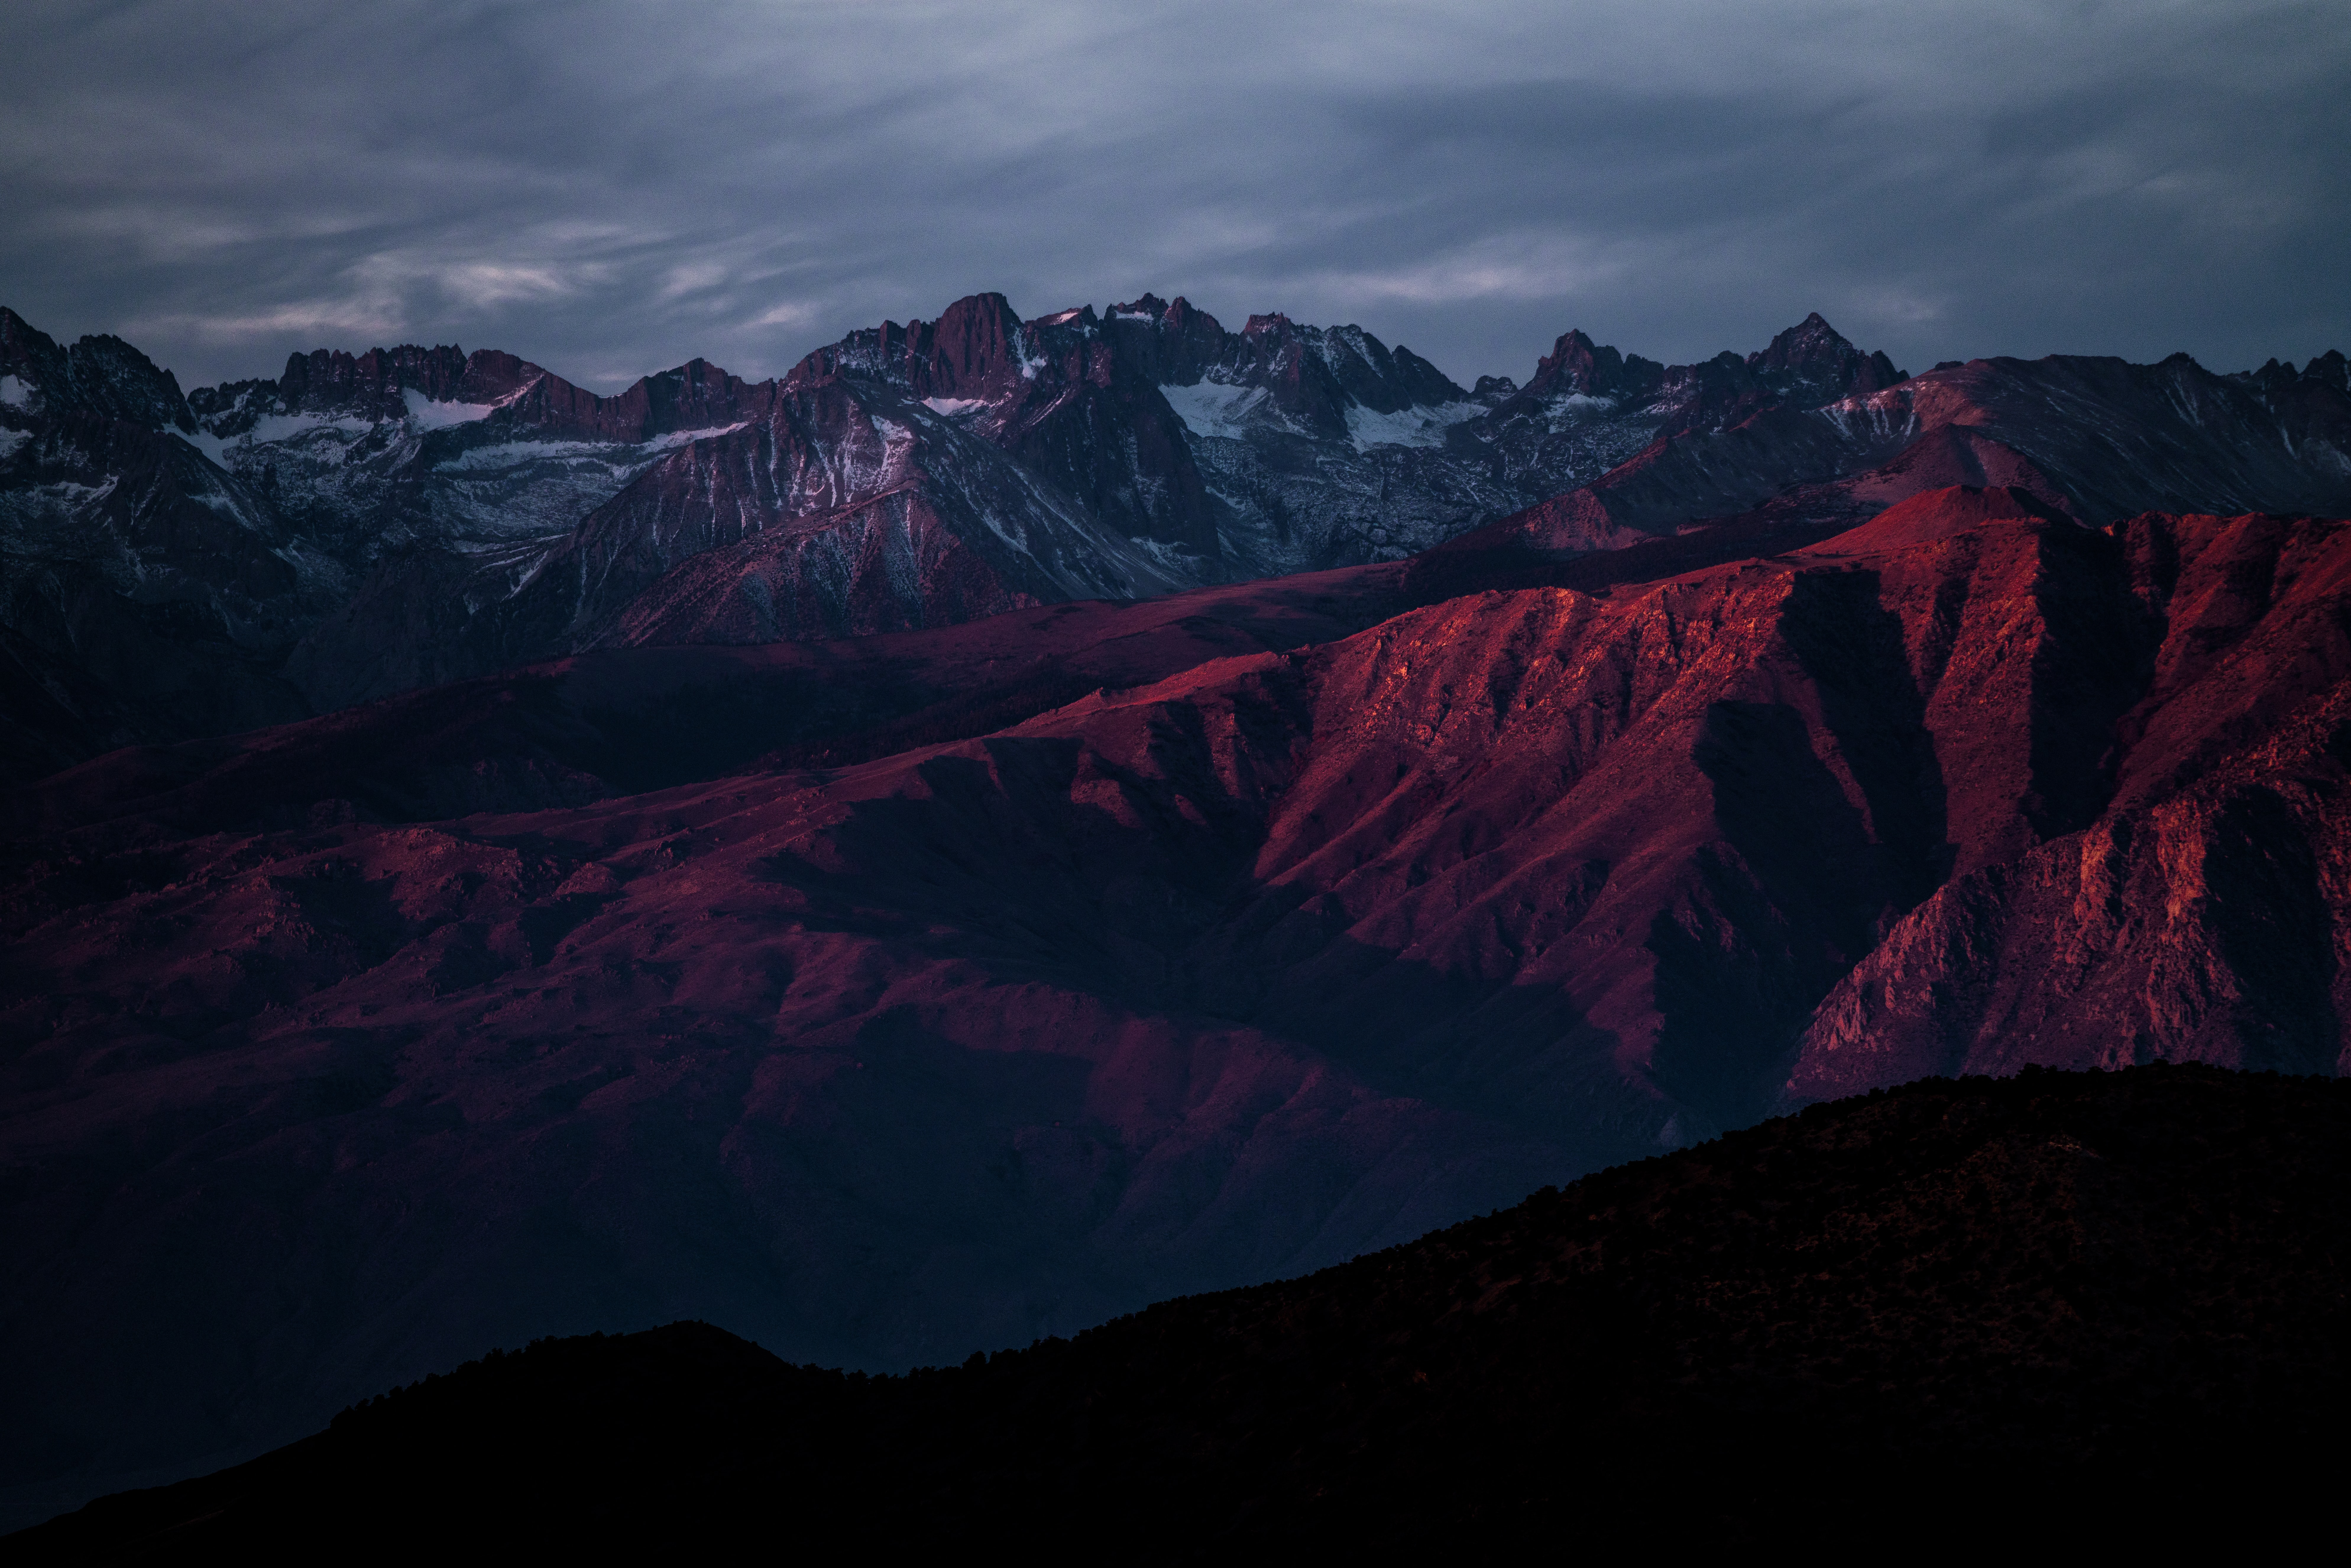 A red-hued shot of a mountainous landscape with numerous snow-capped peaks